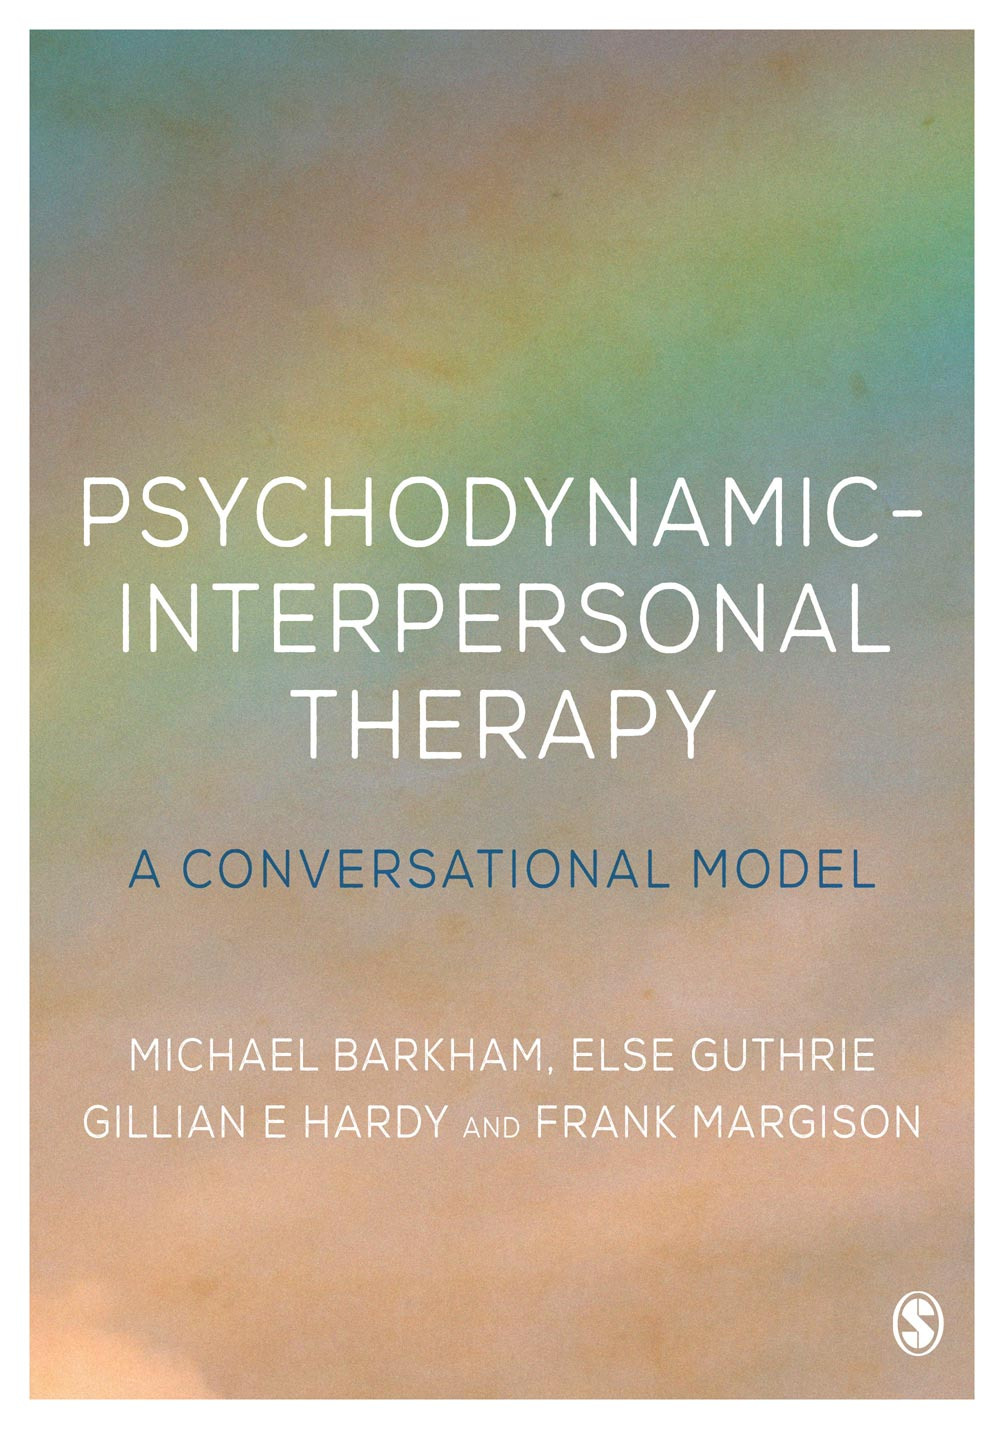 Psychodynamic-Interpersonal Therapy: A Conversational Model book cover image